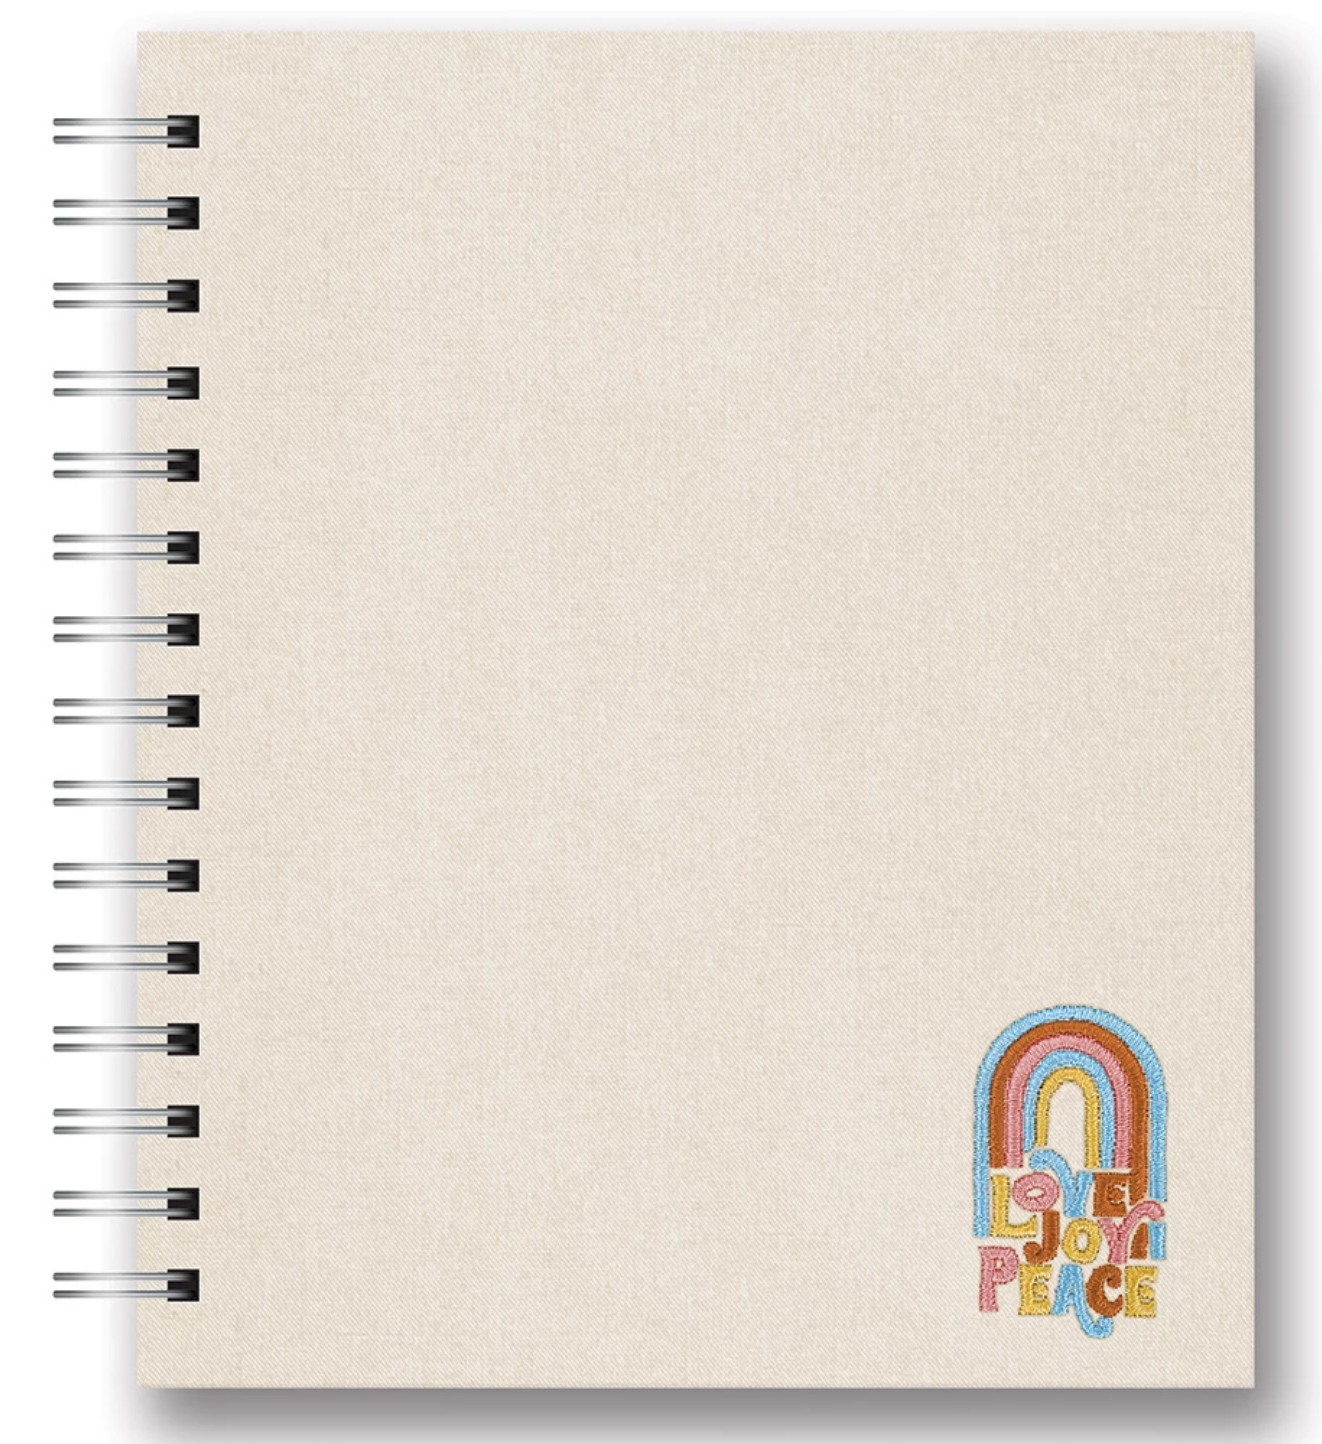 Studio Oh Embroidered Spiral Notebooks - Love Joy Peace